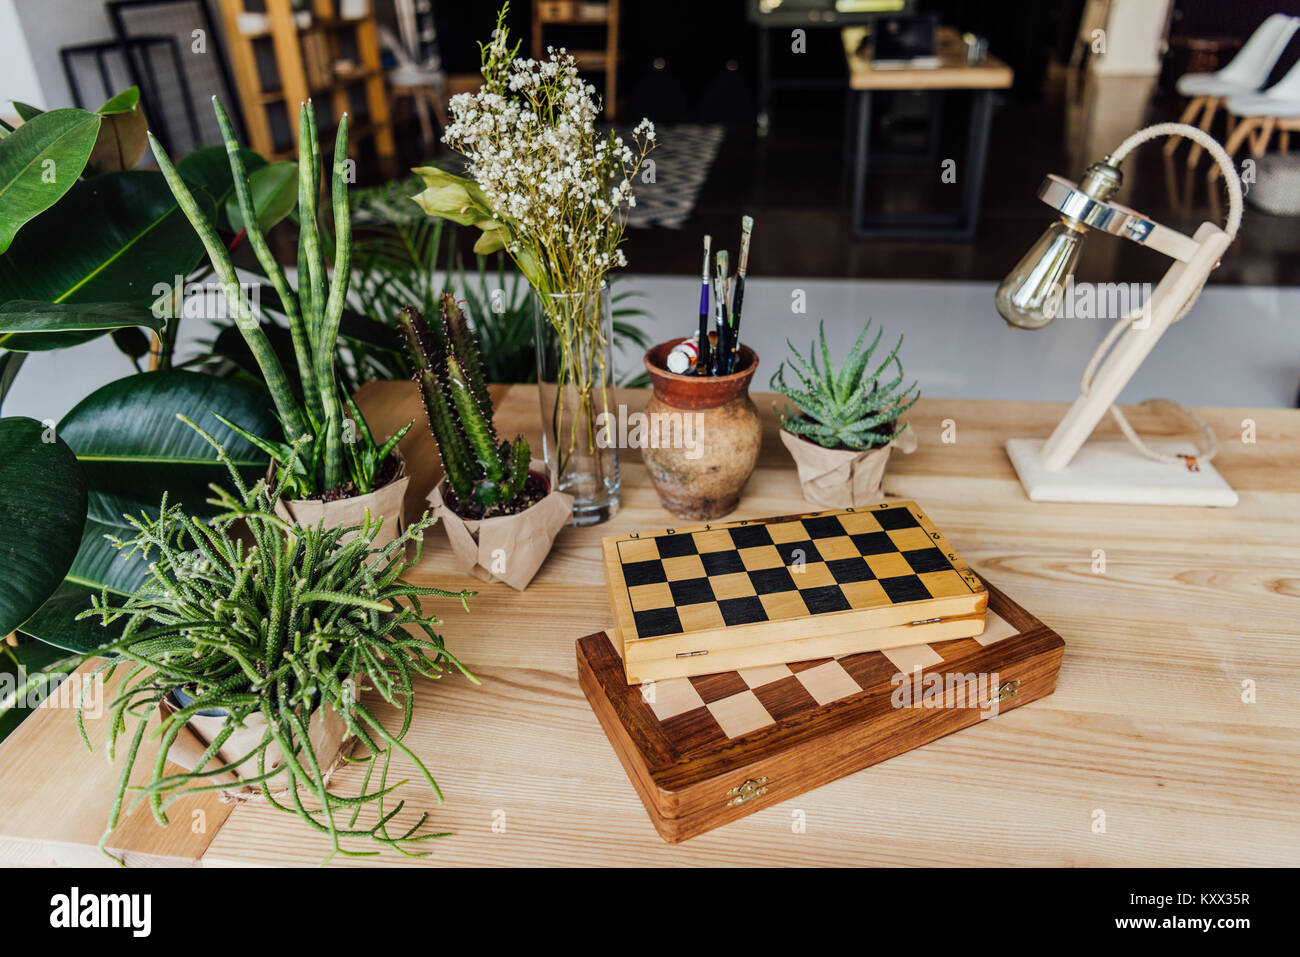 Group of green plants in pots with chess boards and retro lamp on the table - Stock Image